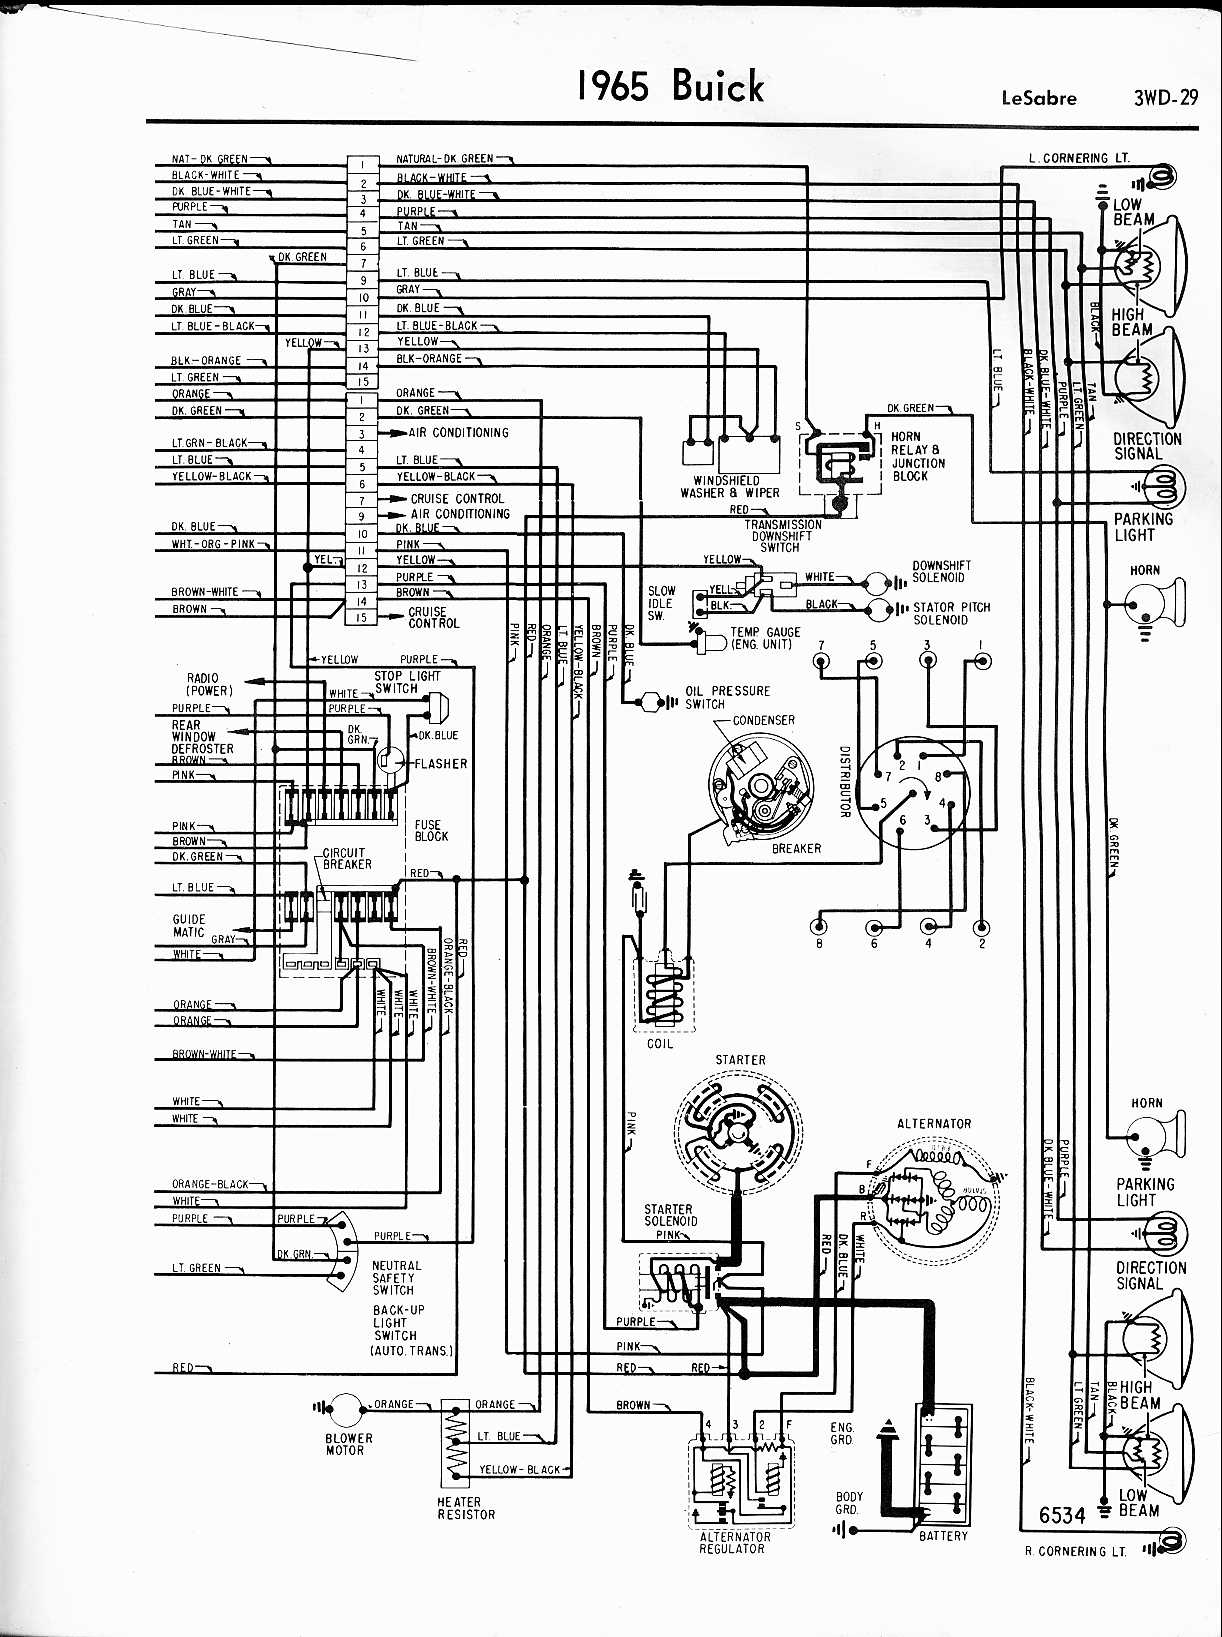 Buick Wiring Diagrams 1957 1965 Electric Motor Diagram Symbols Get Free Image About Lesabre Right Half